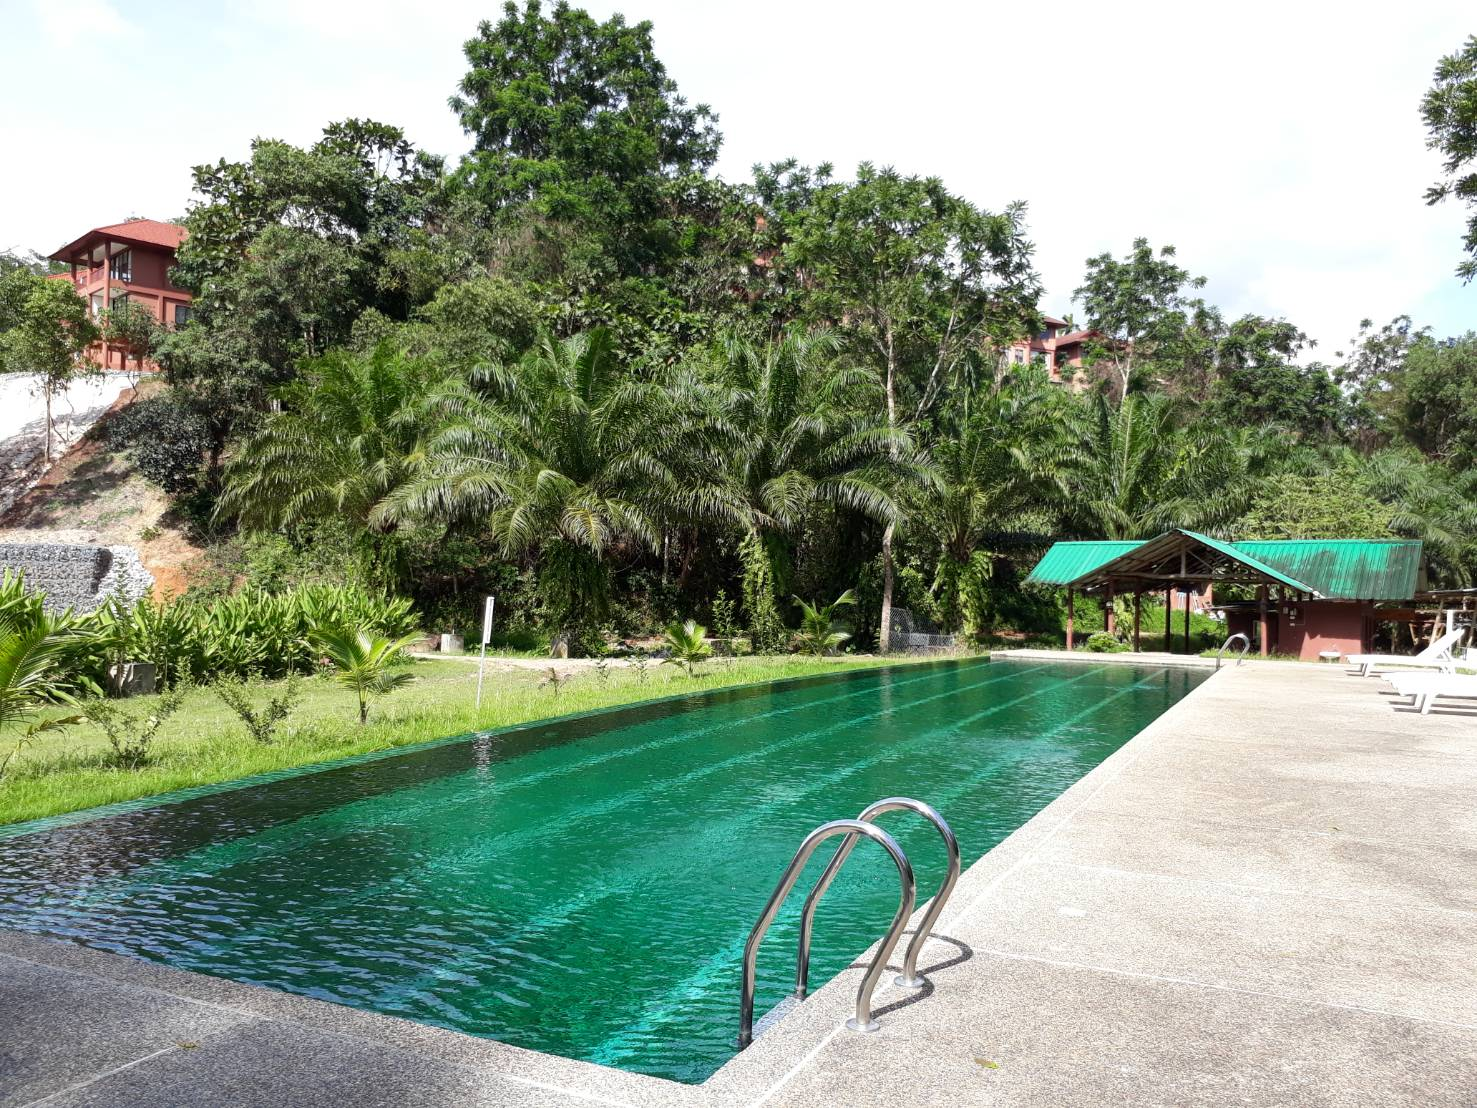 The outdoor swimming pool is located down the hill and by the farmland.